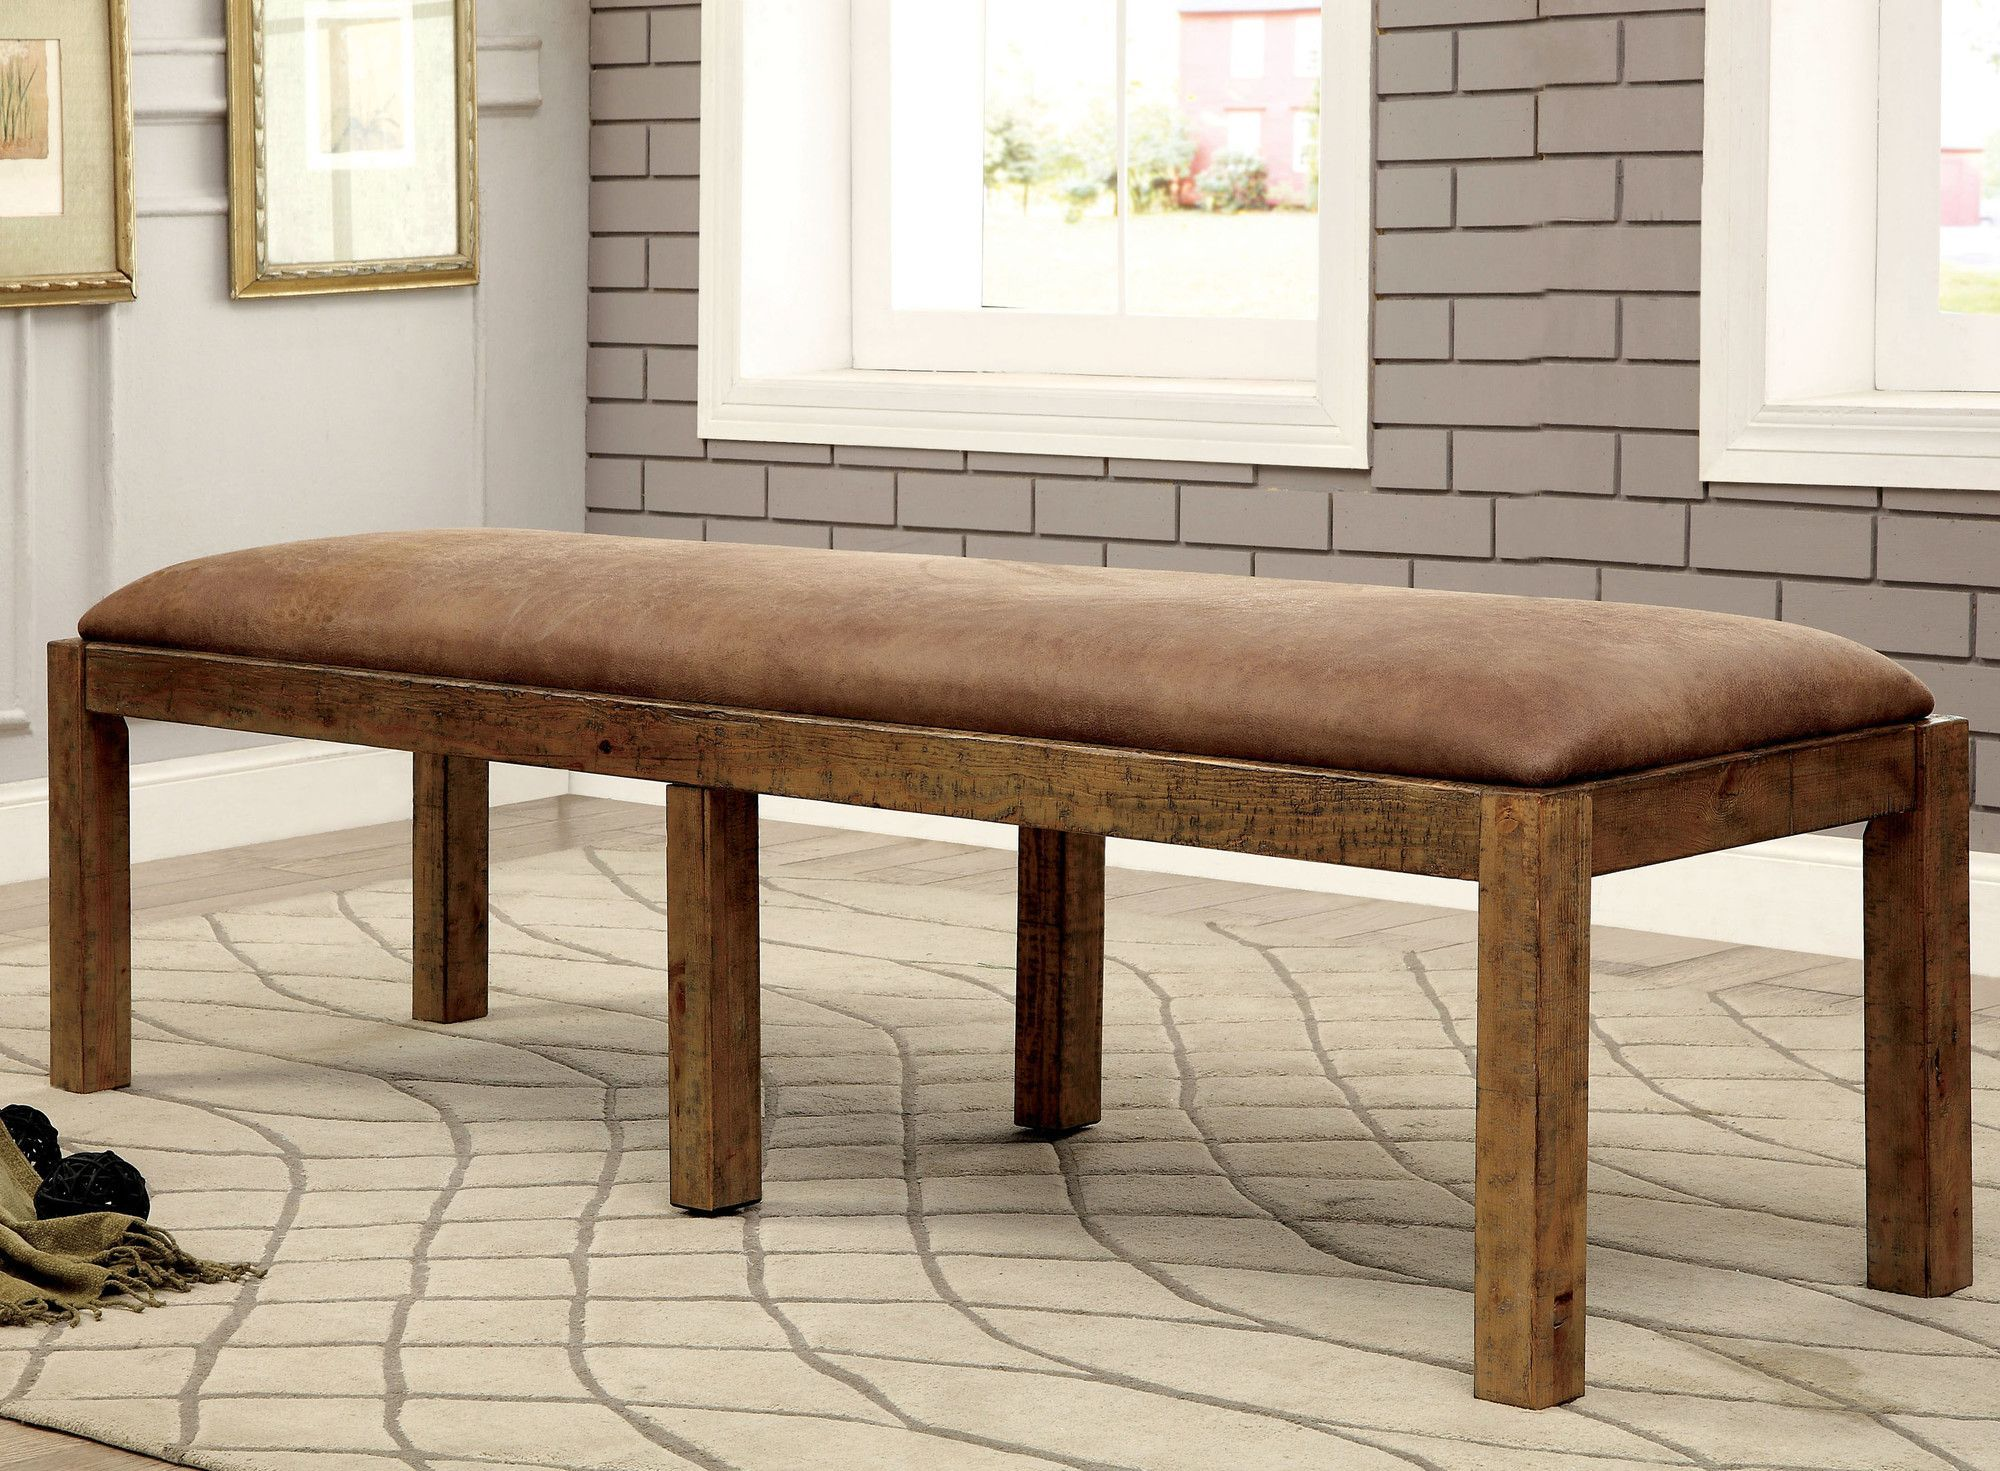 Kitchen table benches  Galleano Wood Kitchen Bench  Products  Pinterest  Kitchen benches